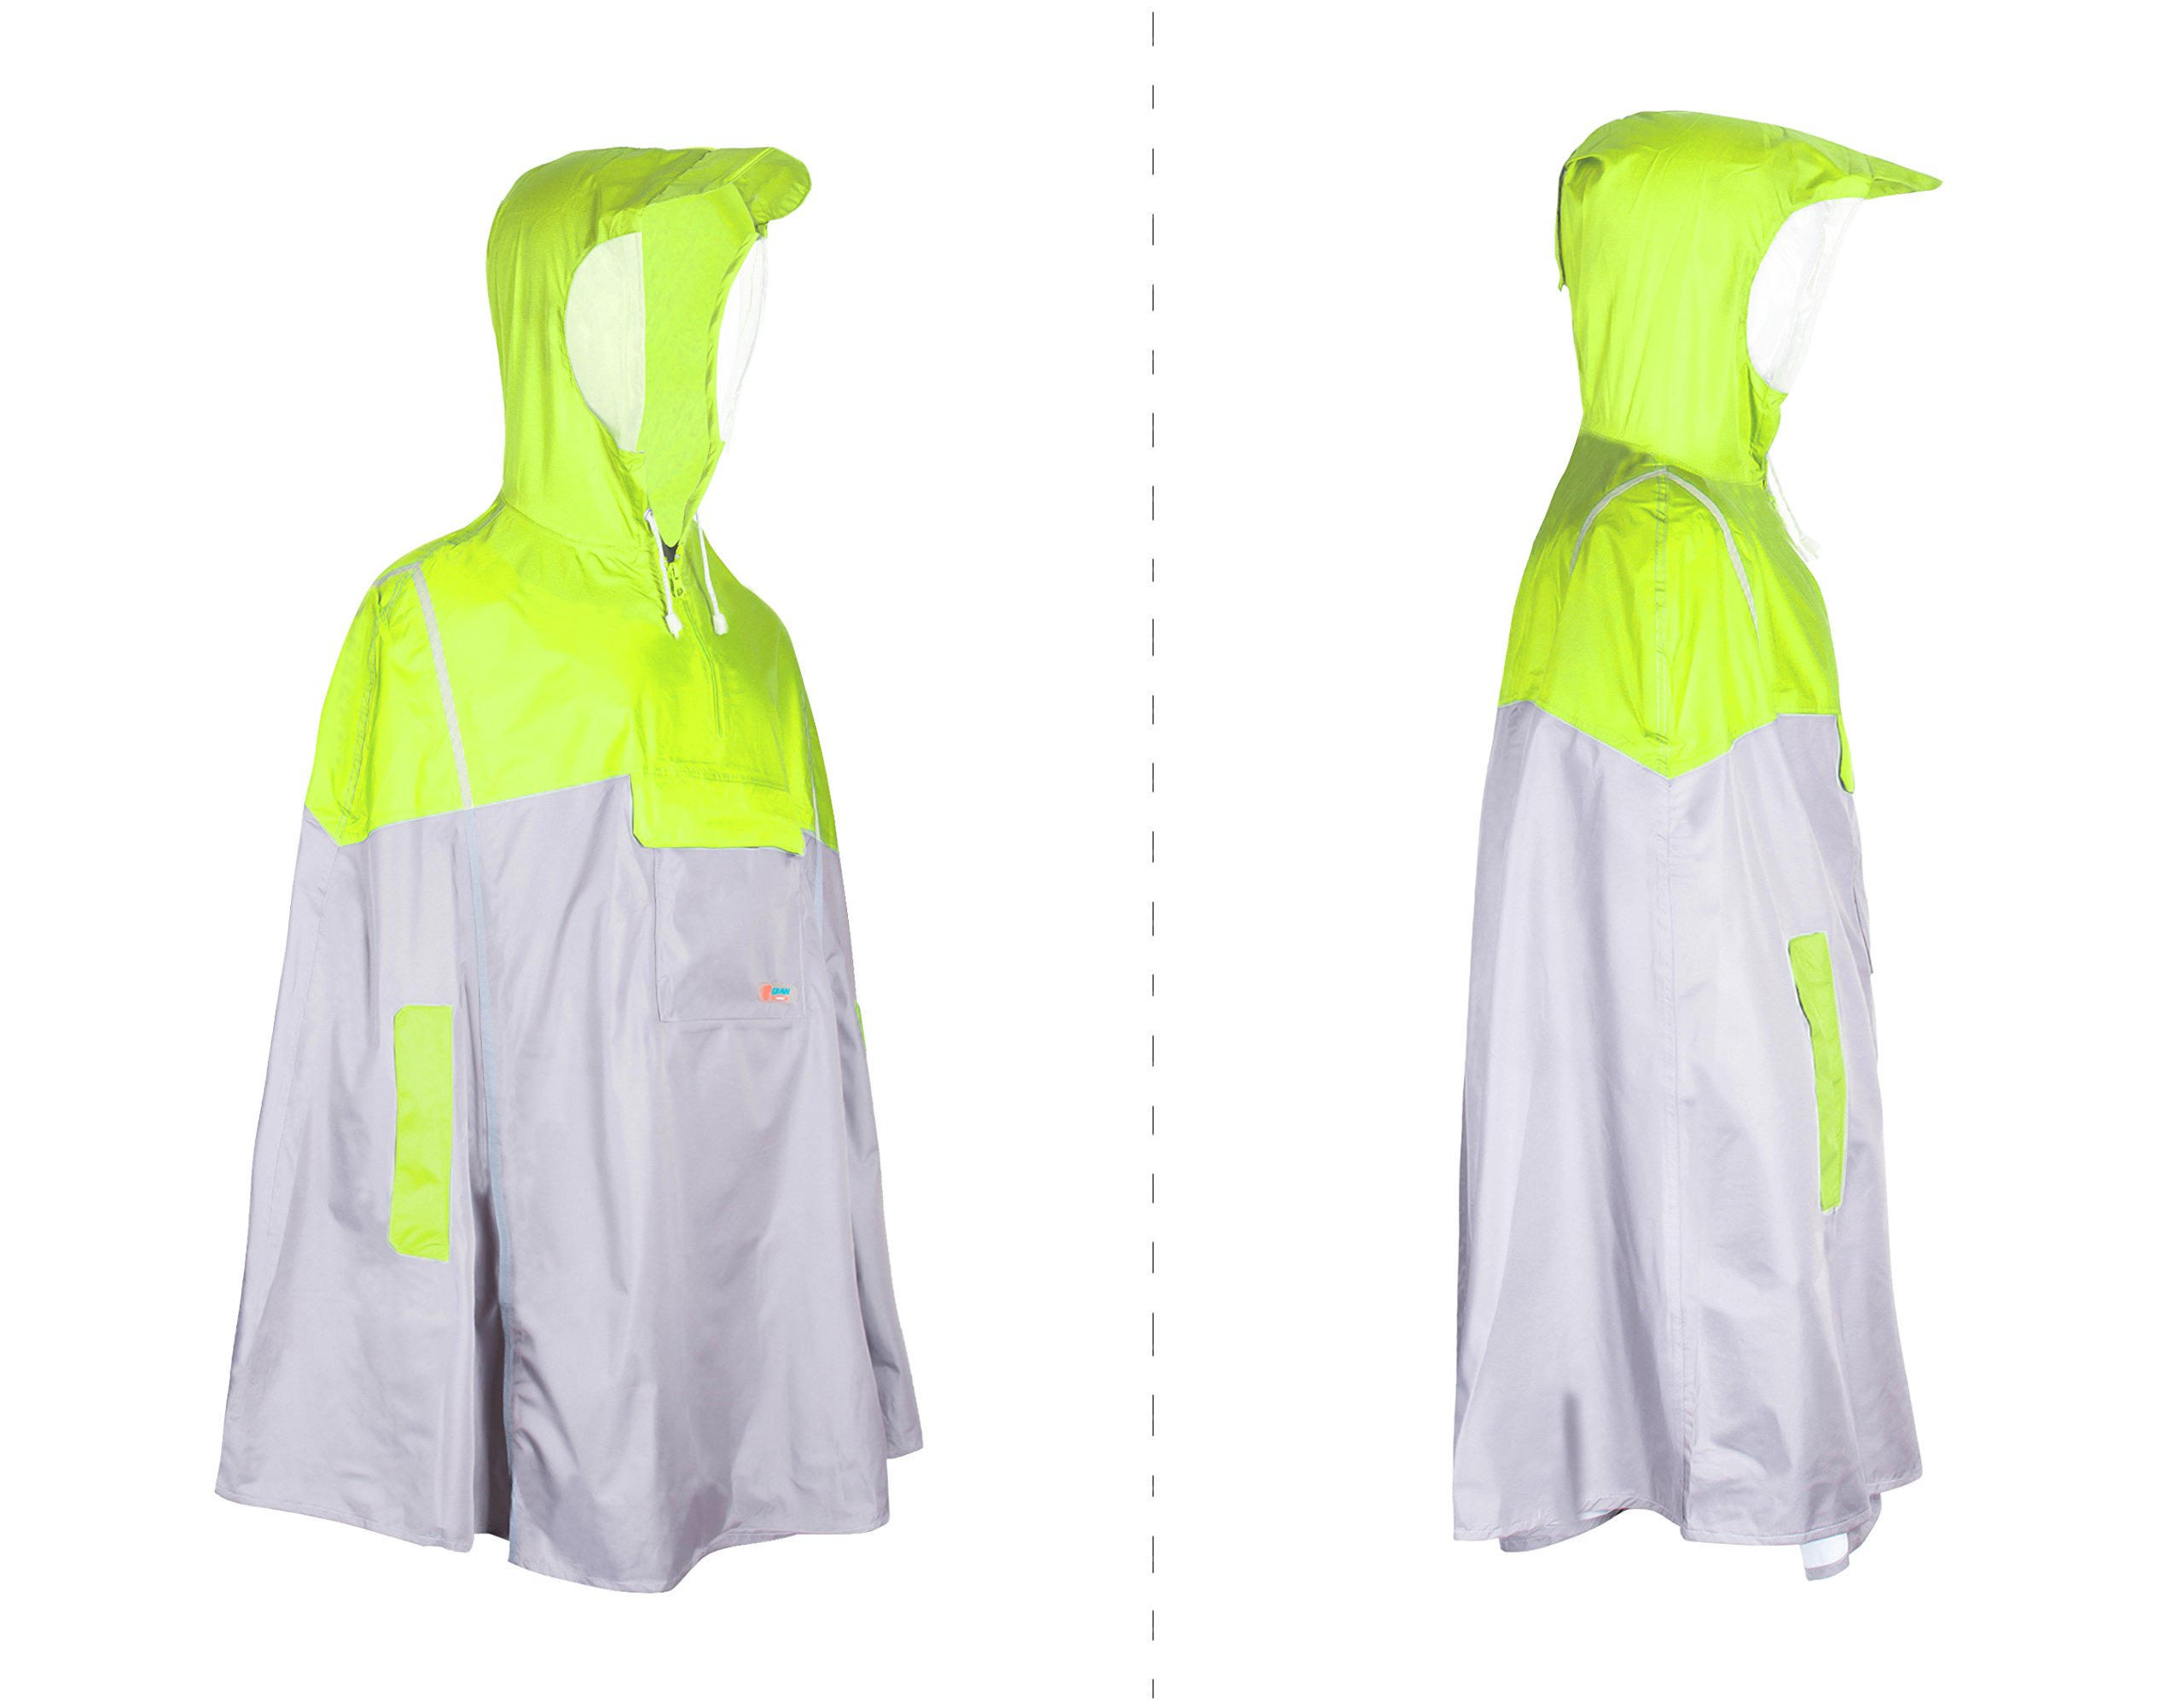 Balnna Rain Poncho with Hoods and Zipper Waterproof Raincoat for Outdoor Activities-Green by Balnna (Image #3)